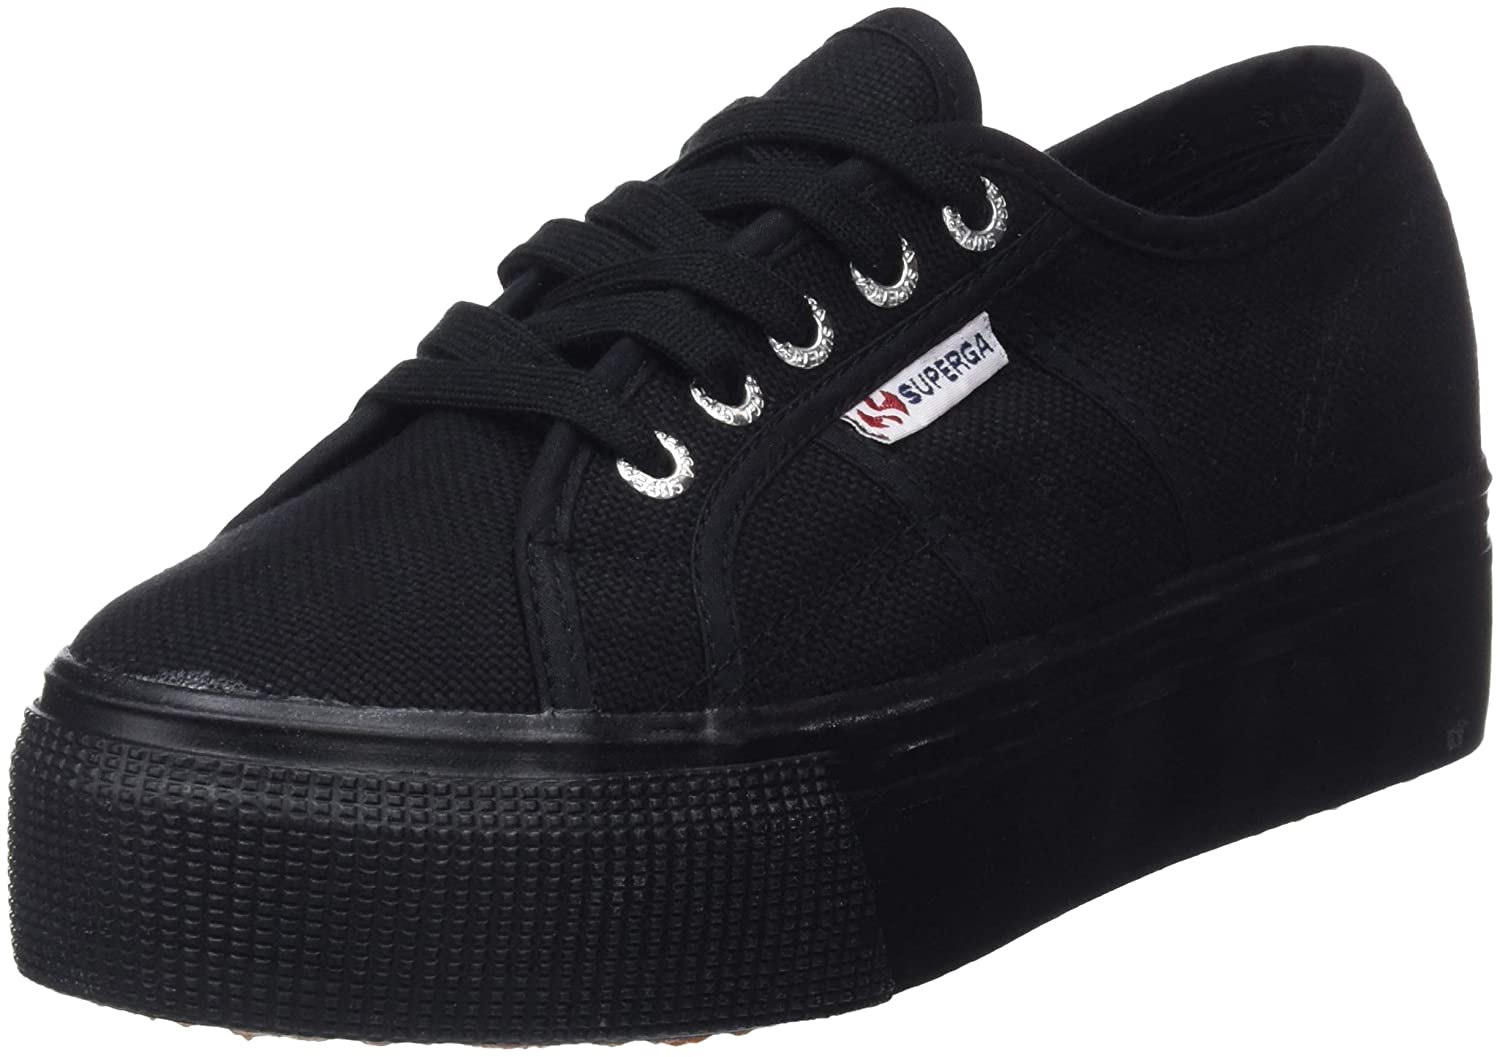 TALLA 41 EU. Superga 2790Cotw Linea Up And Down, Zapatillas Unisex adulto